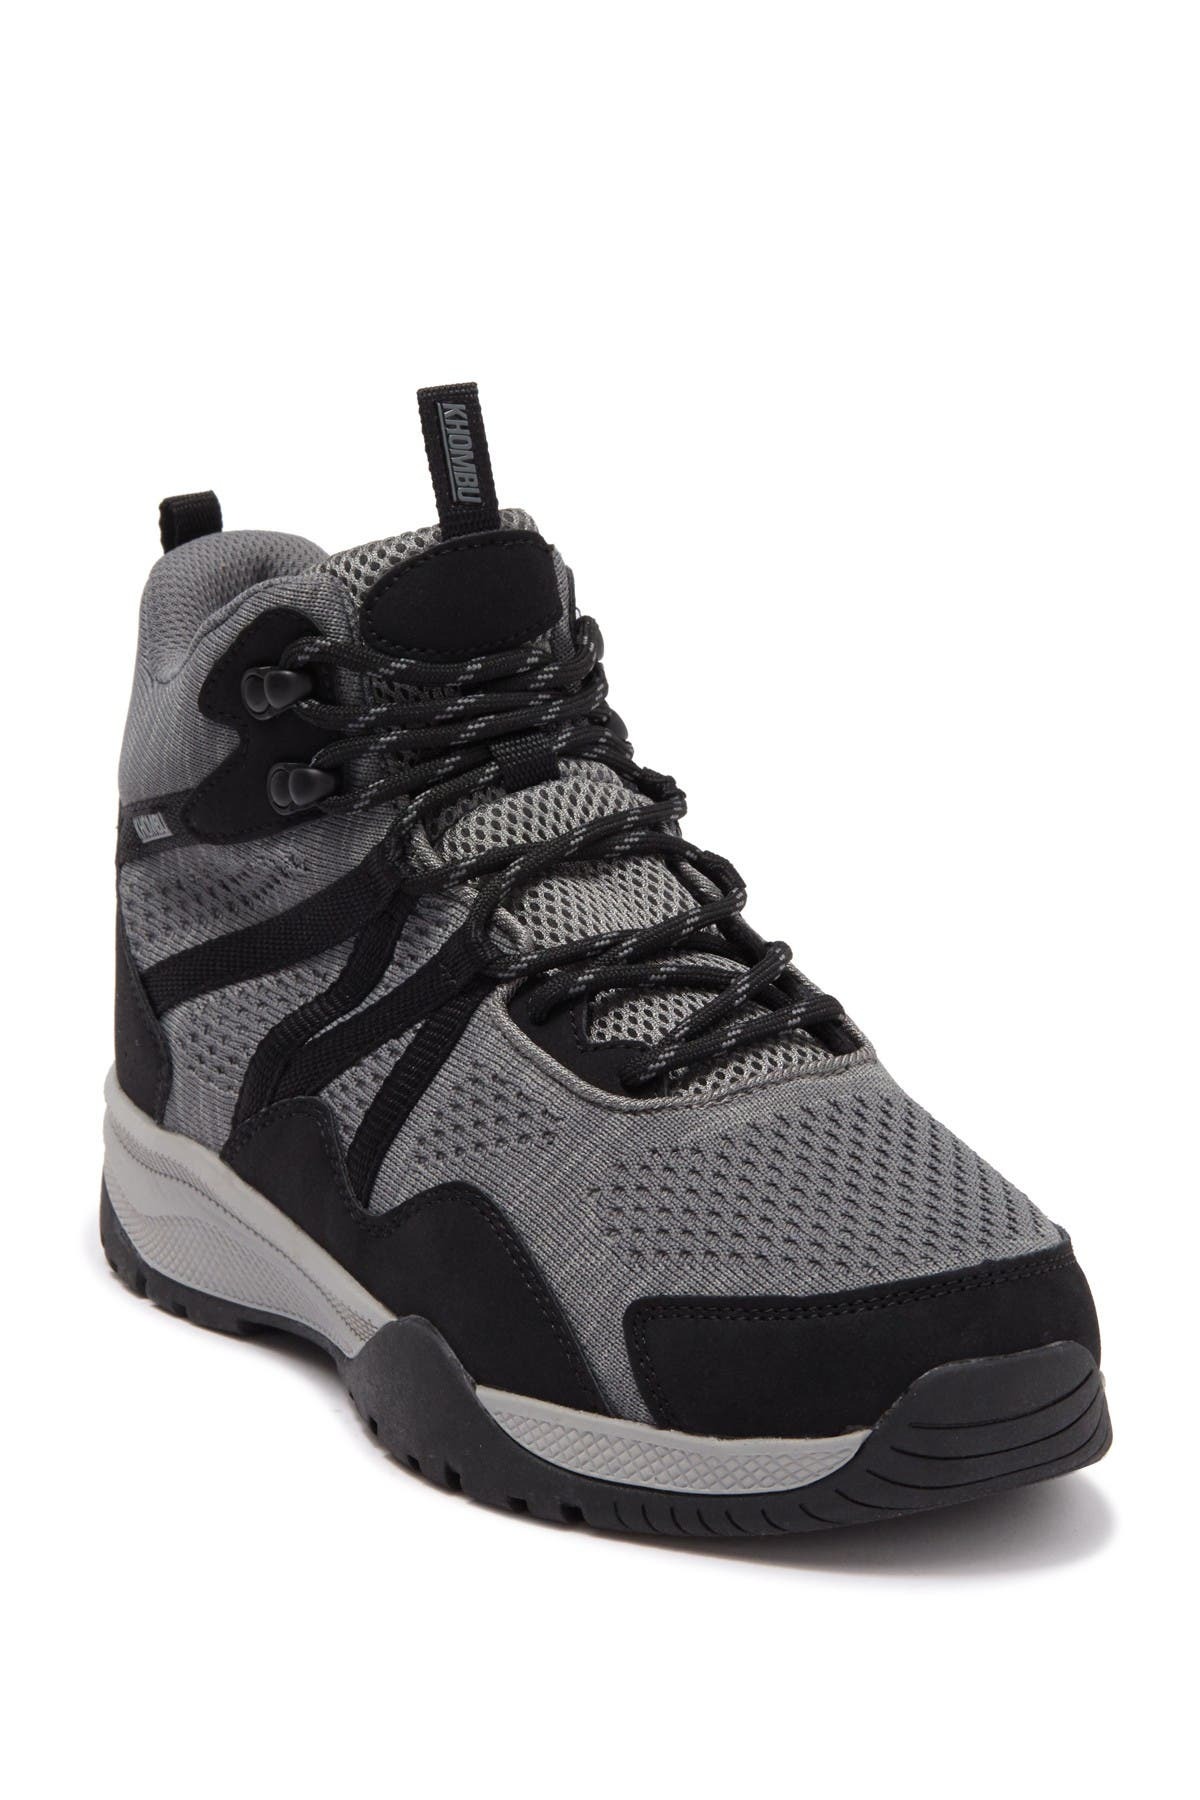 Image of Khombu Wasabi Athletic Sneaker